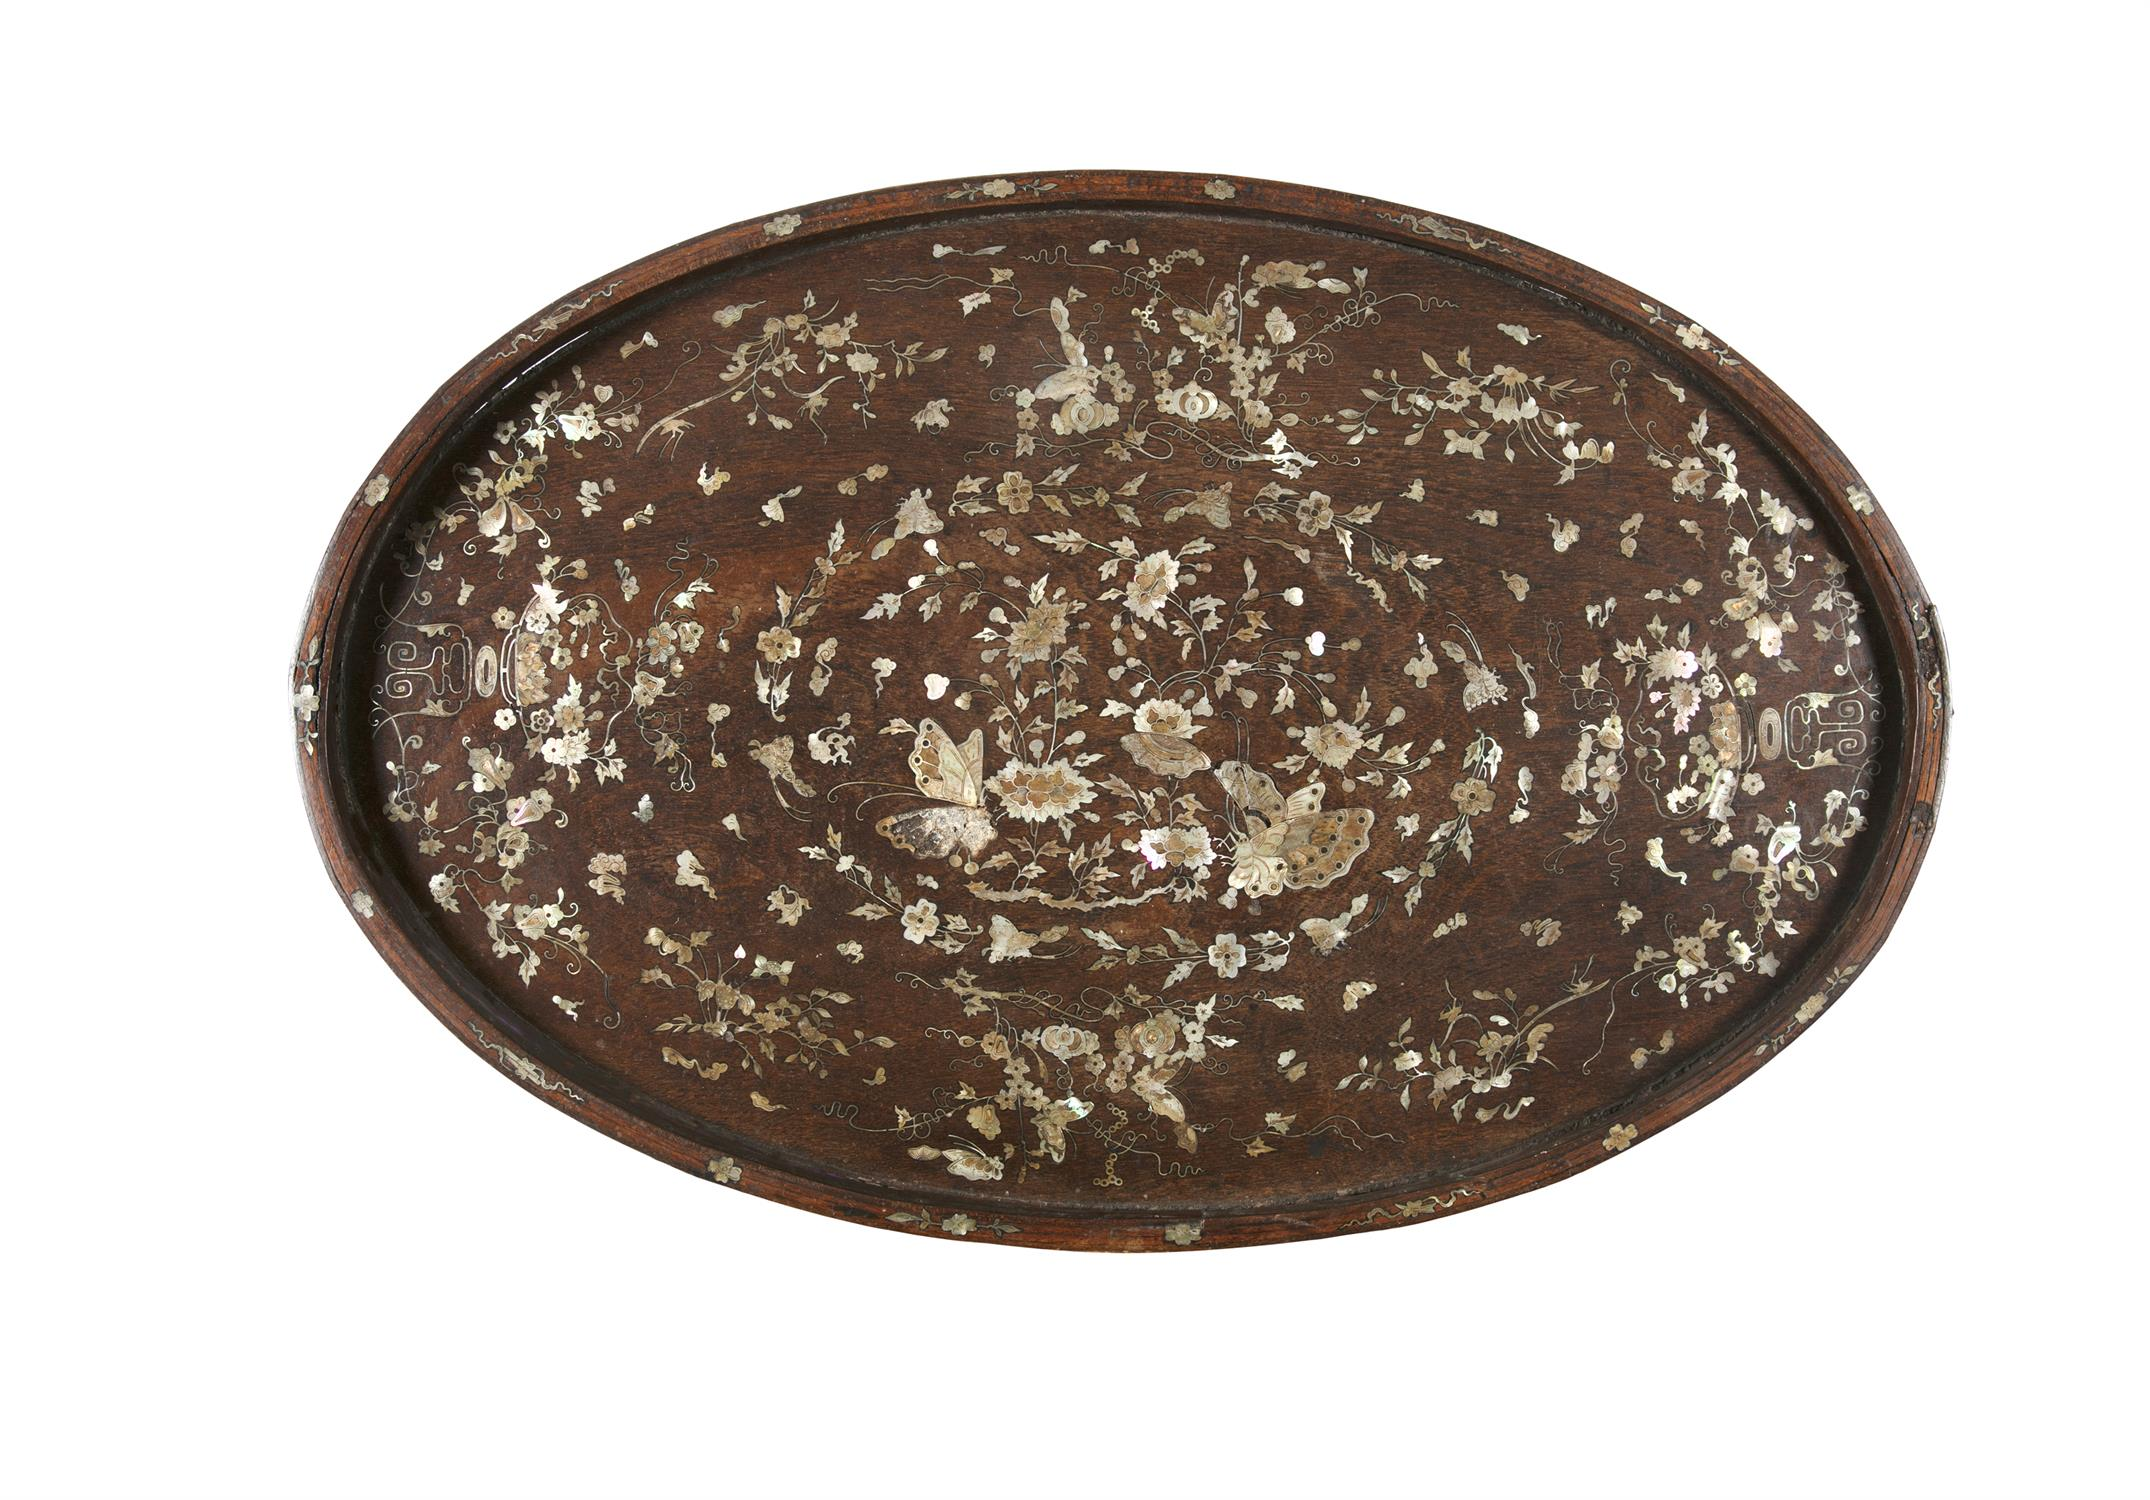 *AN OVATE MOTHER-OF-PEARL INLAID WOODEN MANDARIN TRAY Vietnam, Tonkin, Nam Dinh, Nguyen Dynasty, - Image 3 of 5